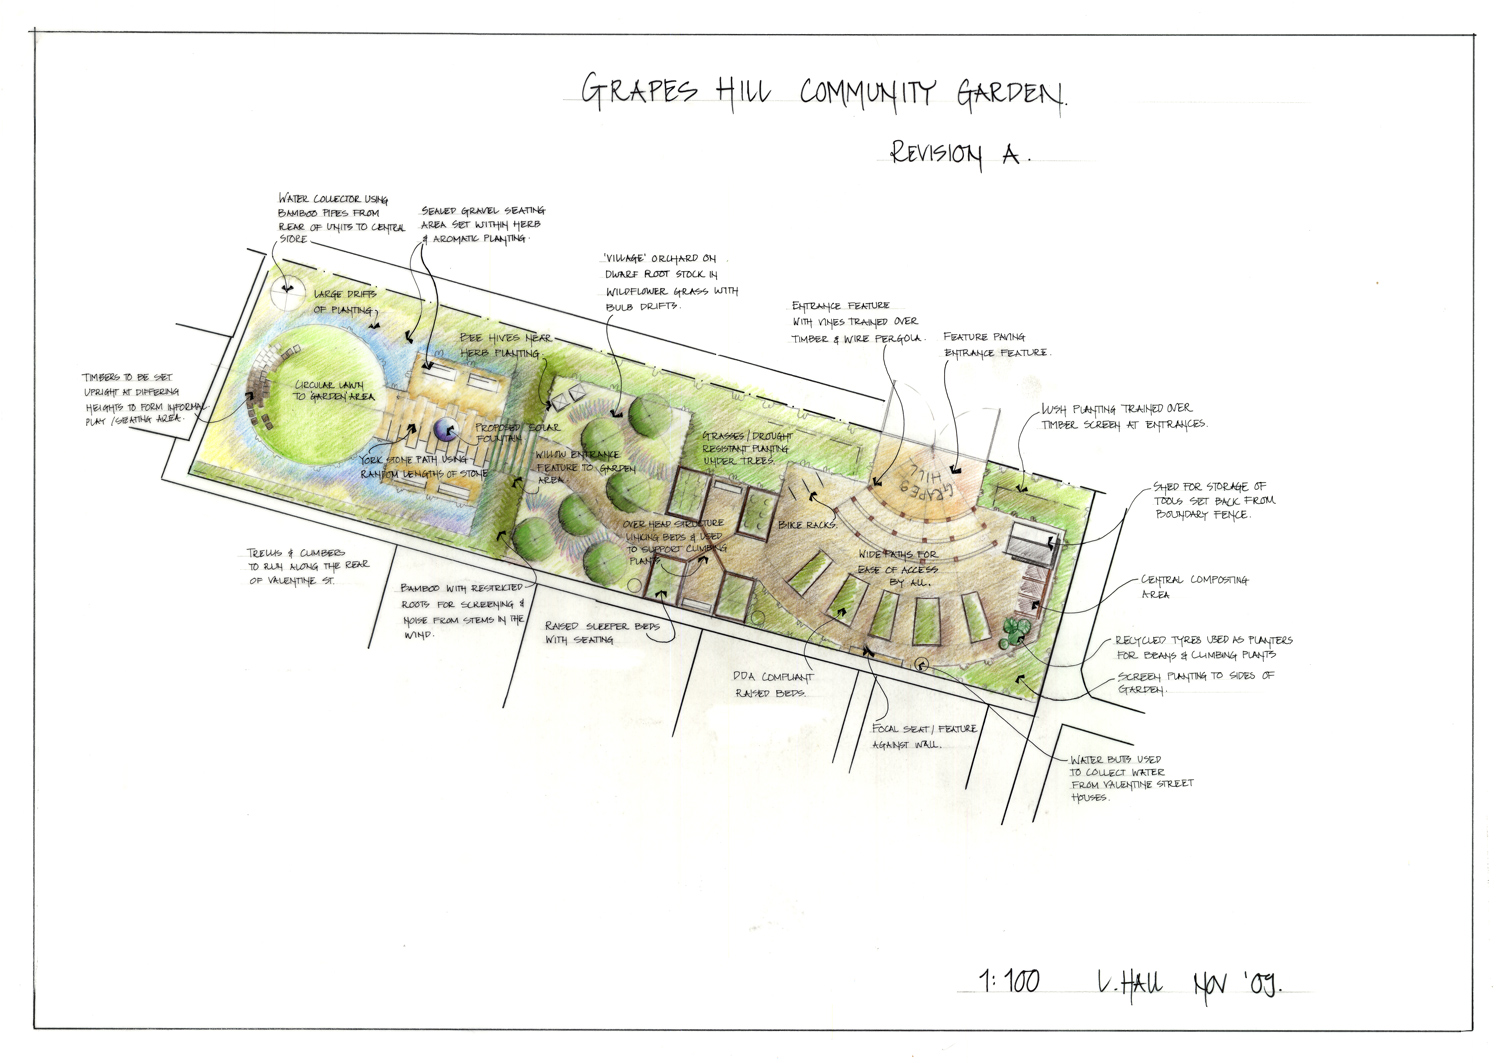 Grapes hill community garden initial sketch of the garden for Garden design blueprint